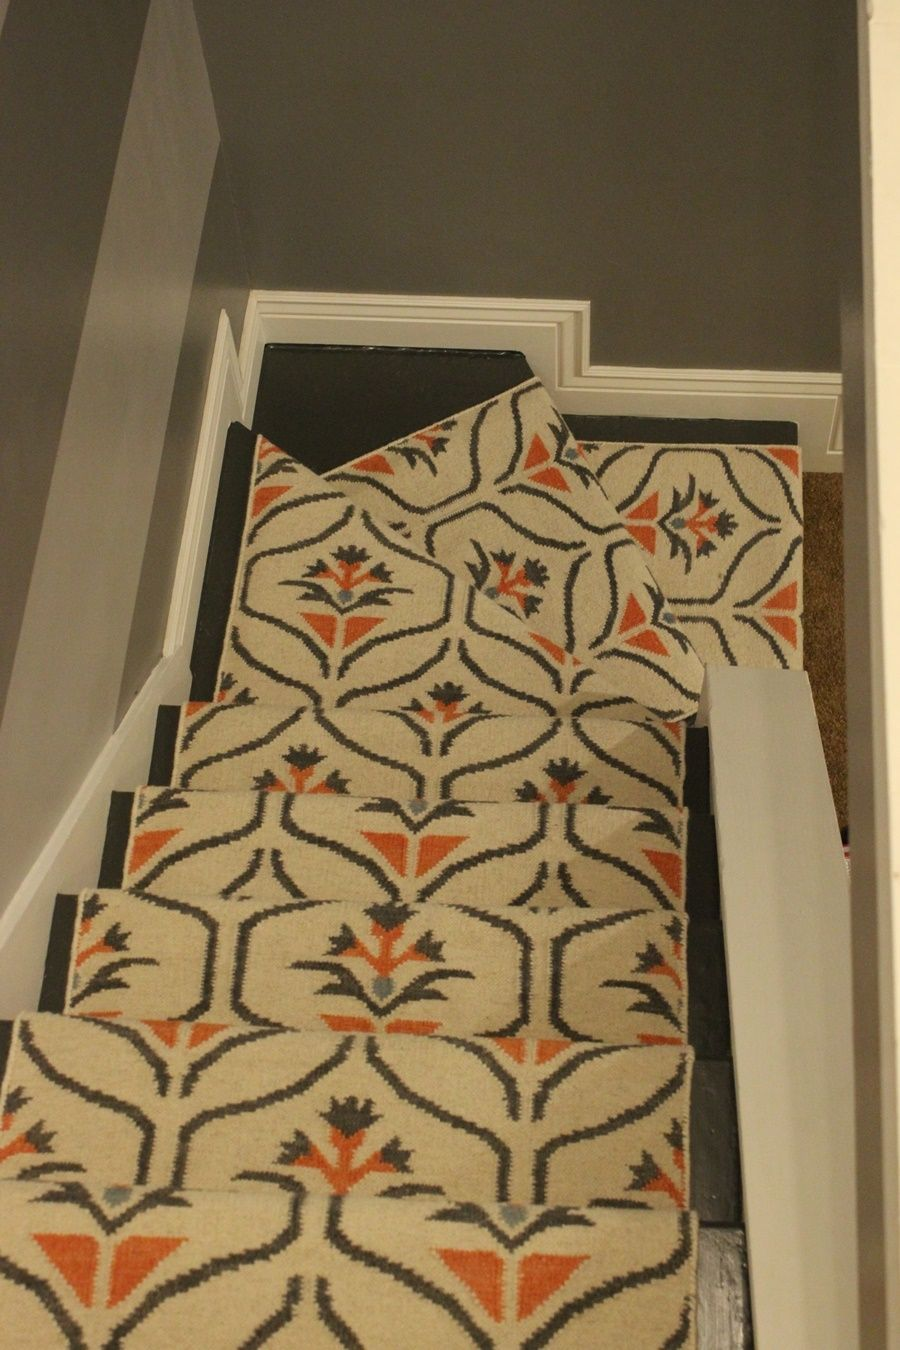 Update Your Staircase: How To Remove And Install Carpet On The Stairs